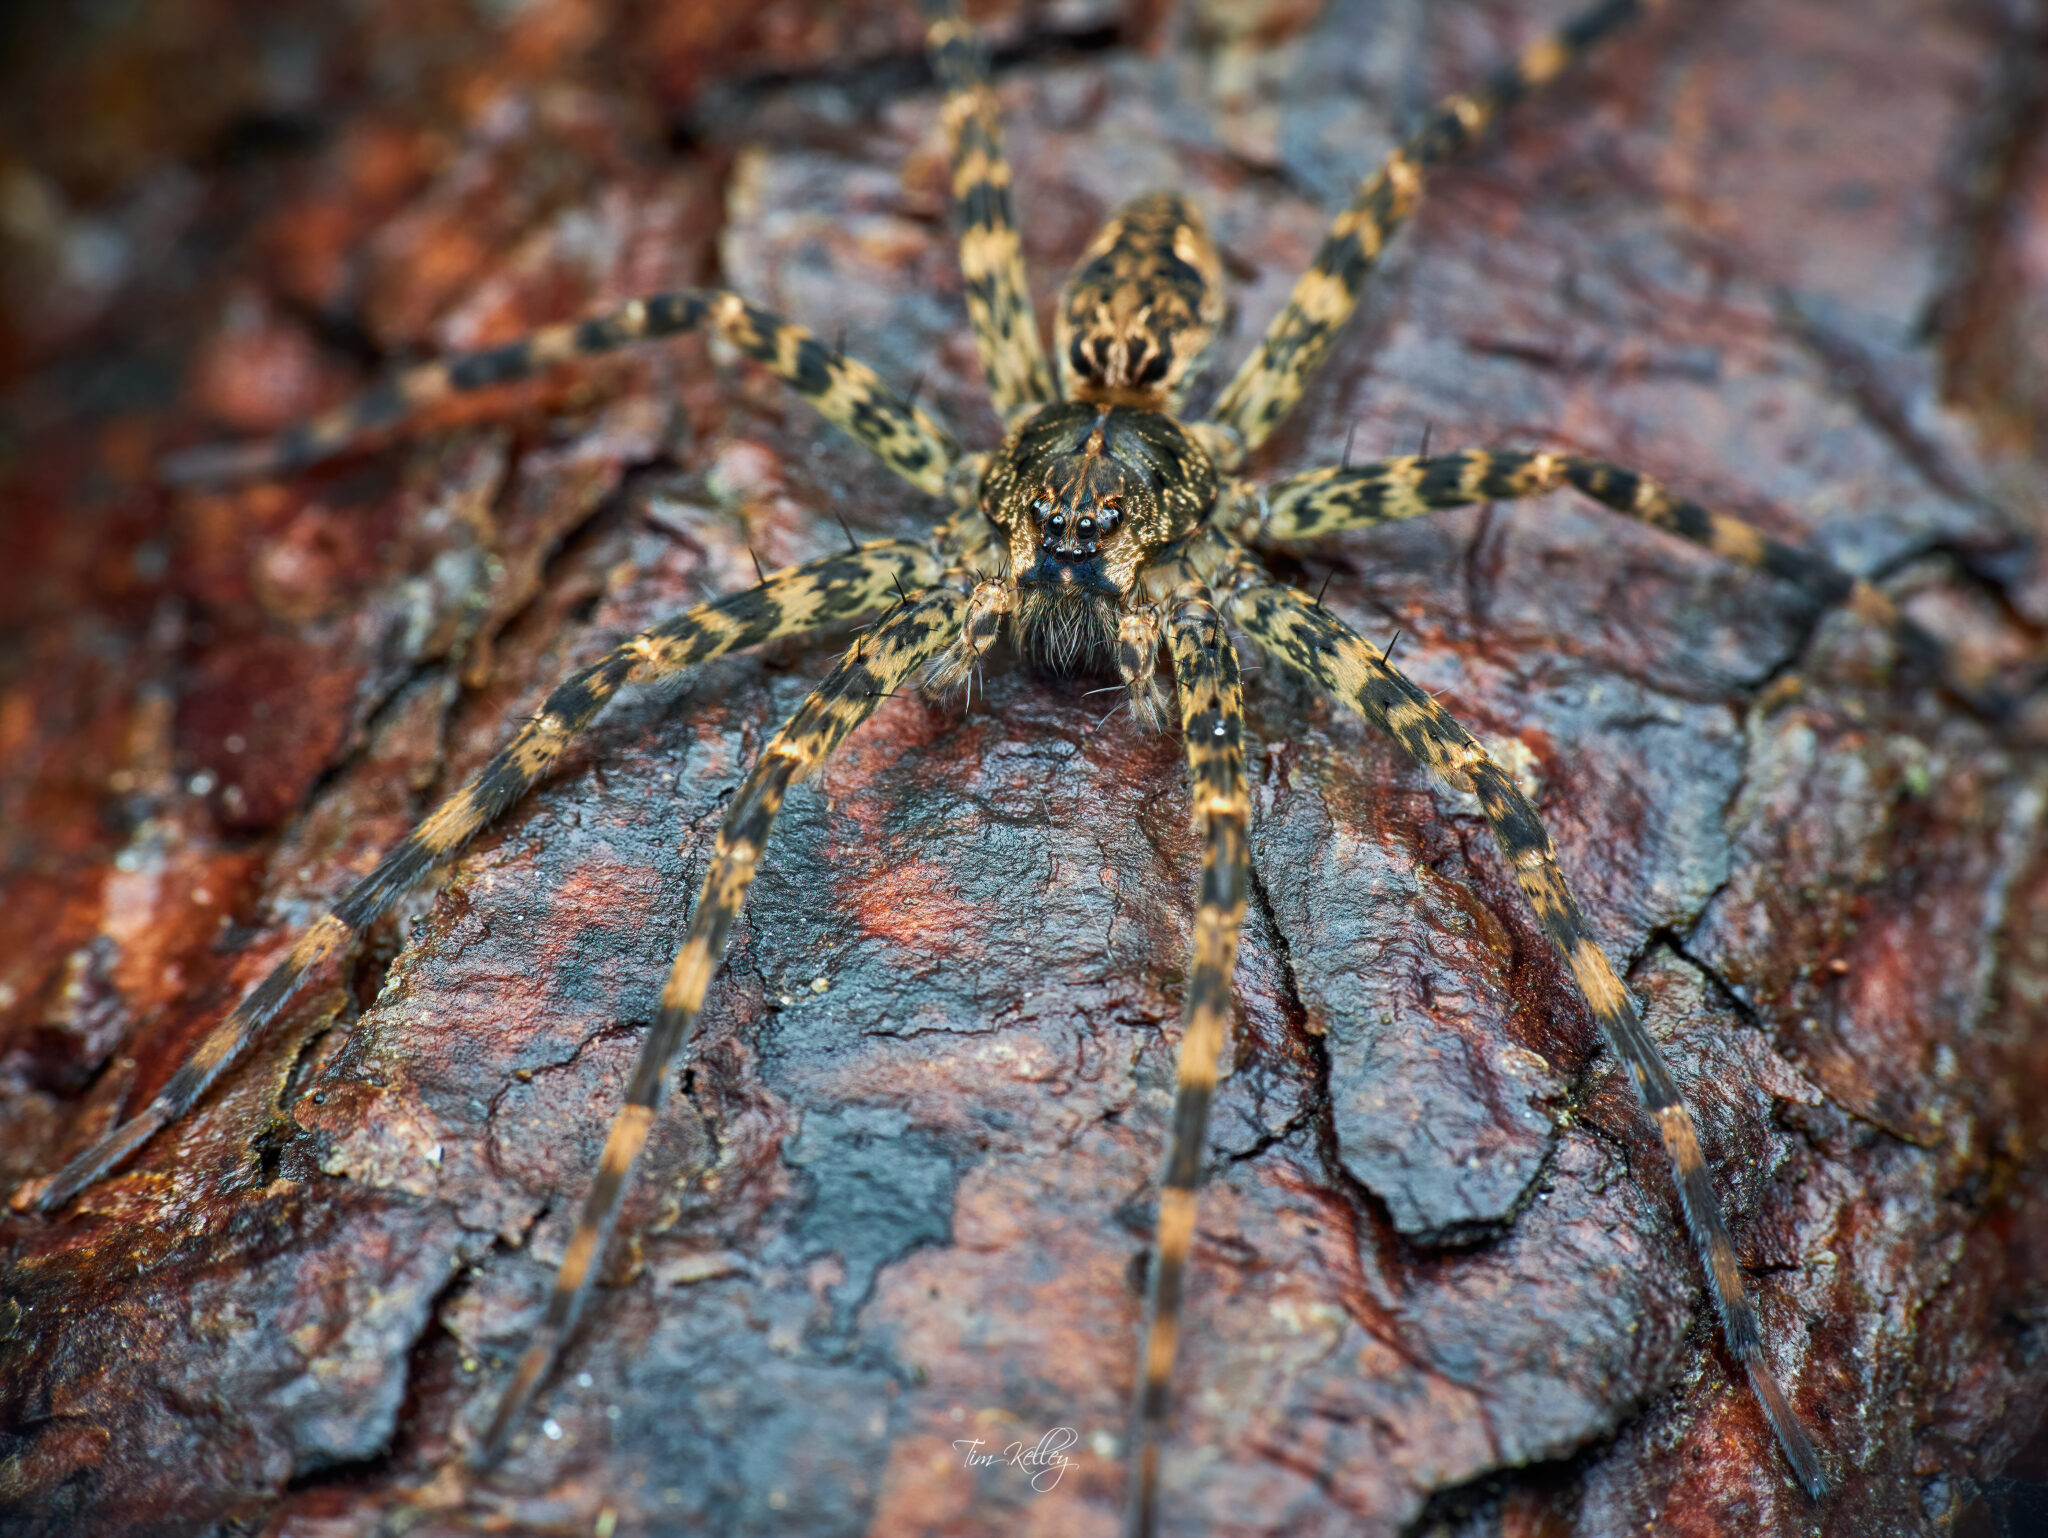 The fishing spider and how its camouflage on trees lured them into my heart